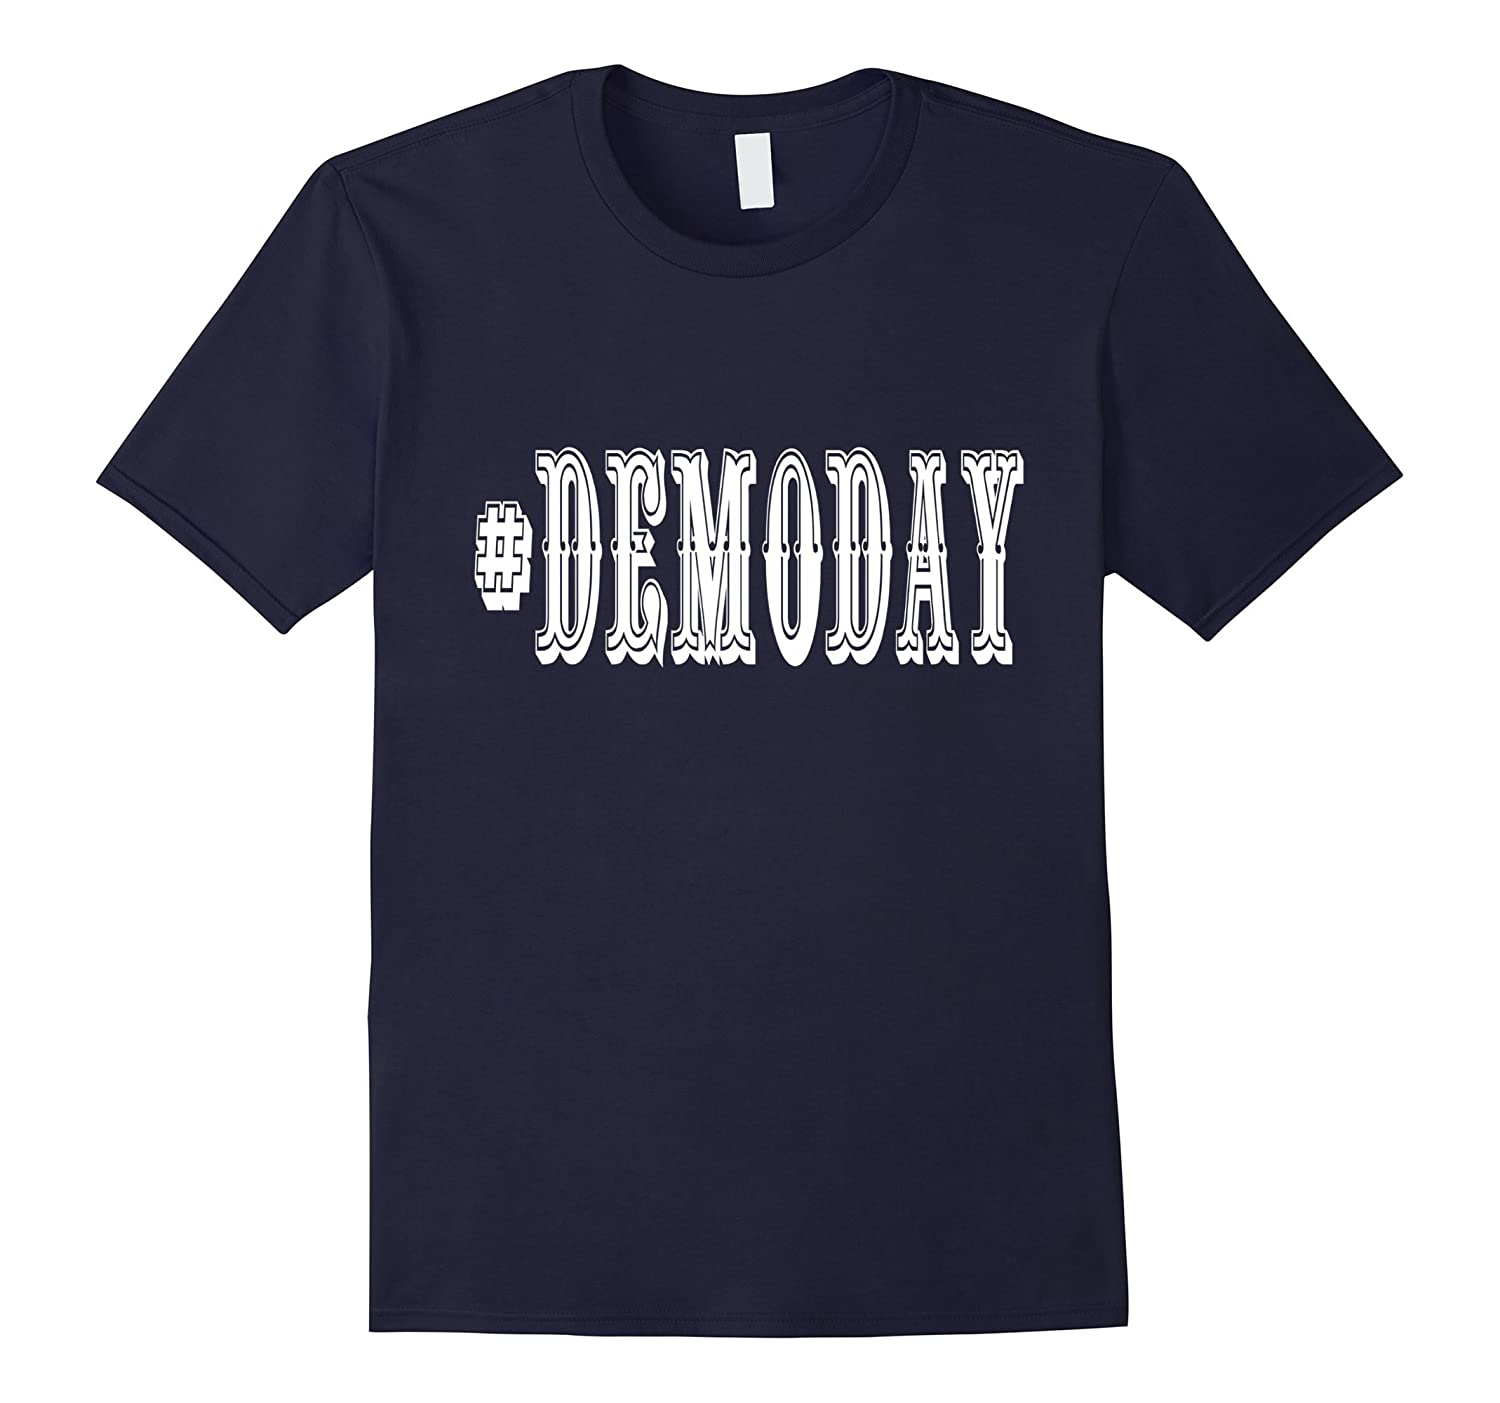 #DEMODAY T-shirt, DEMODAY Shirts-BN